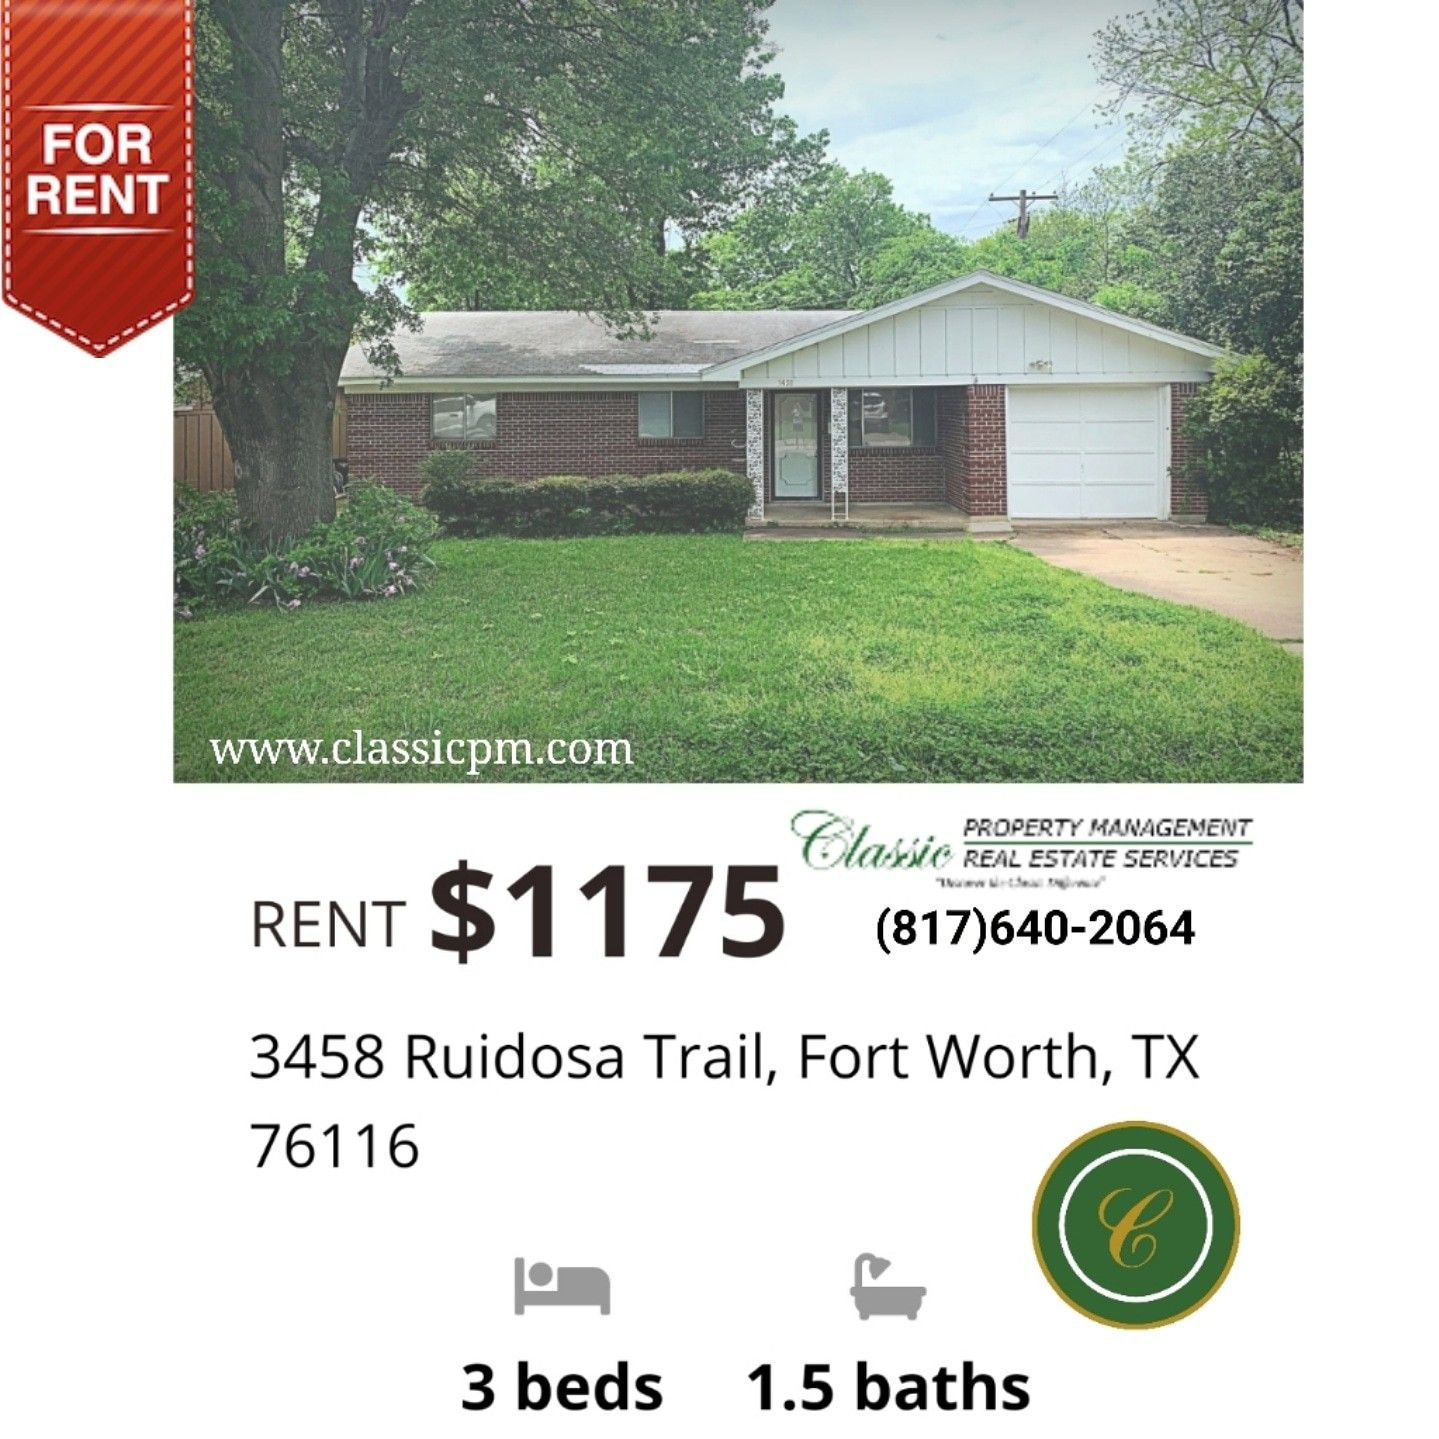 Beautiful 3 Bedroom 1 5 Bath Houseforrent In West Fortworth Texas Real Estate Services Fort Worth Texas Real Estate